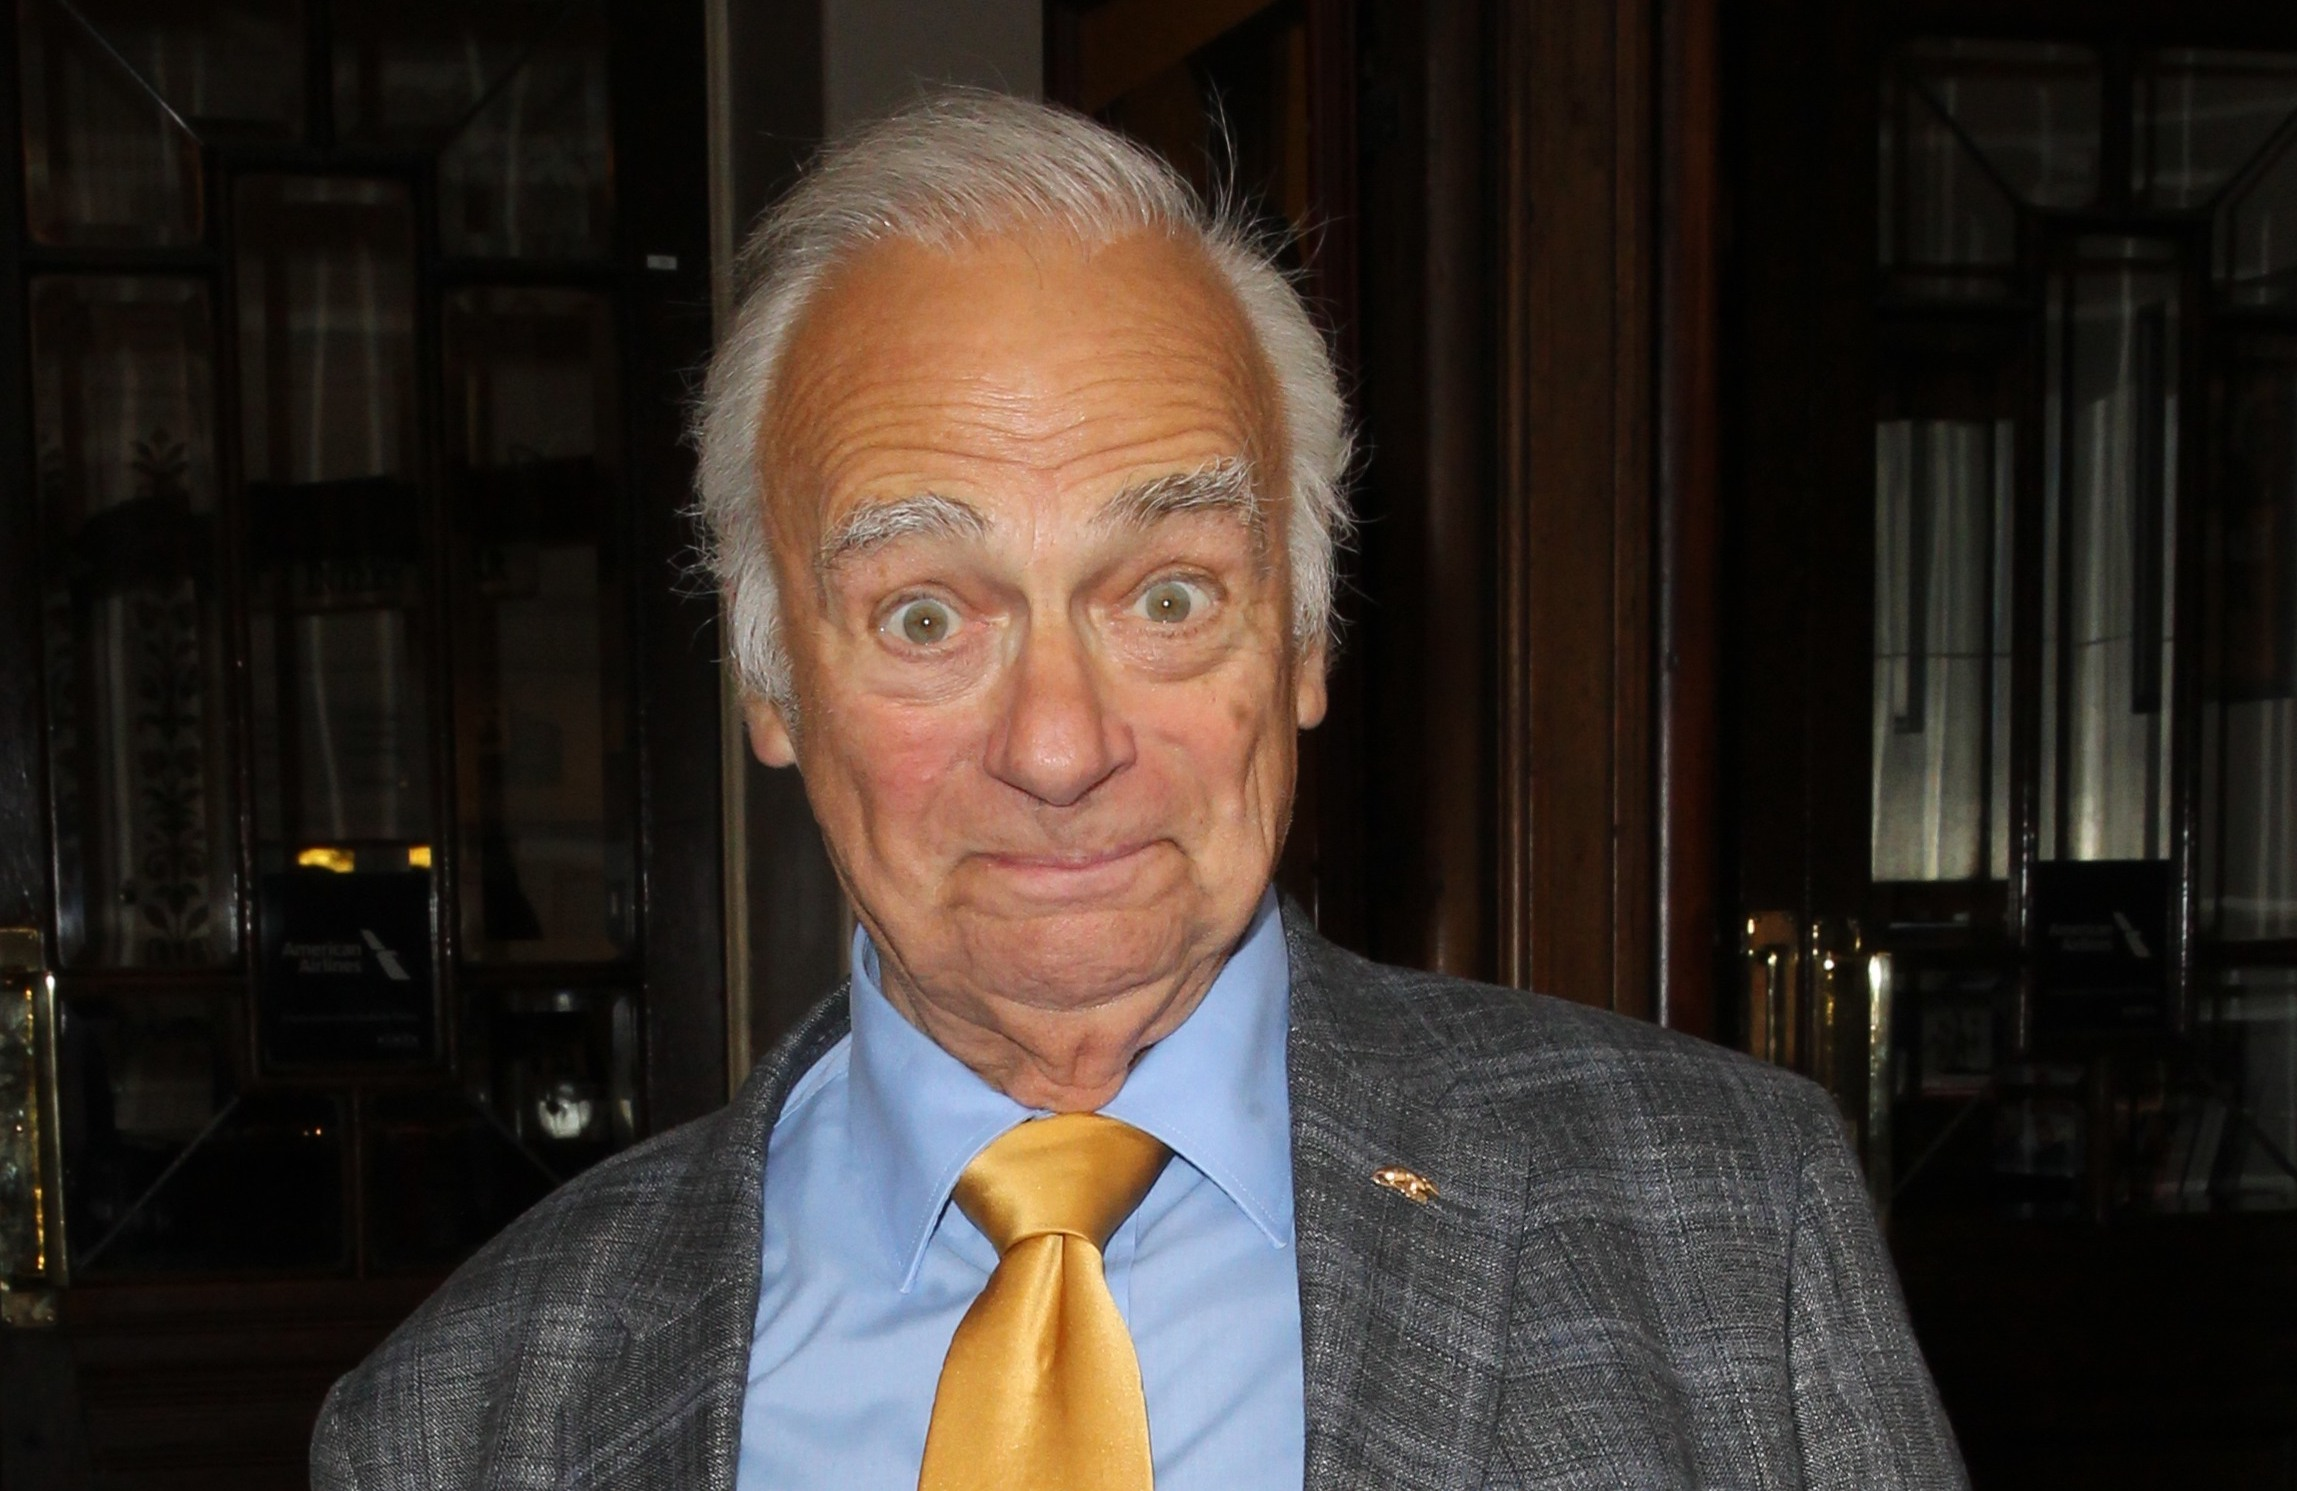 Ex-Corrie star Roy Hudd explains dramatic weight loss following fan concerns